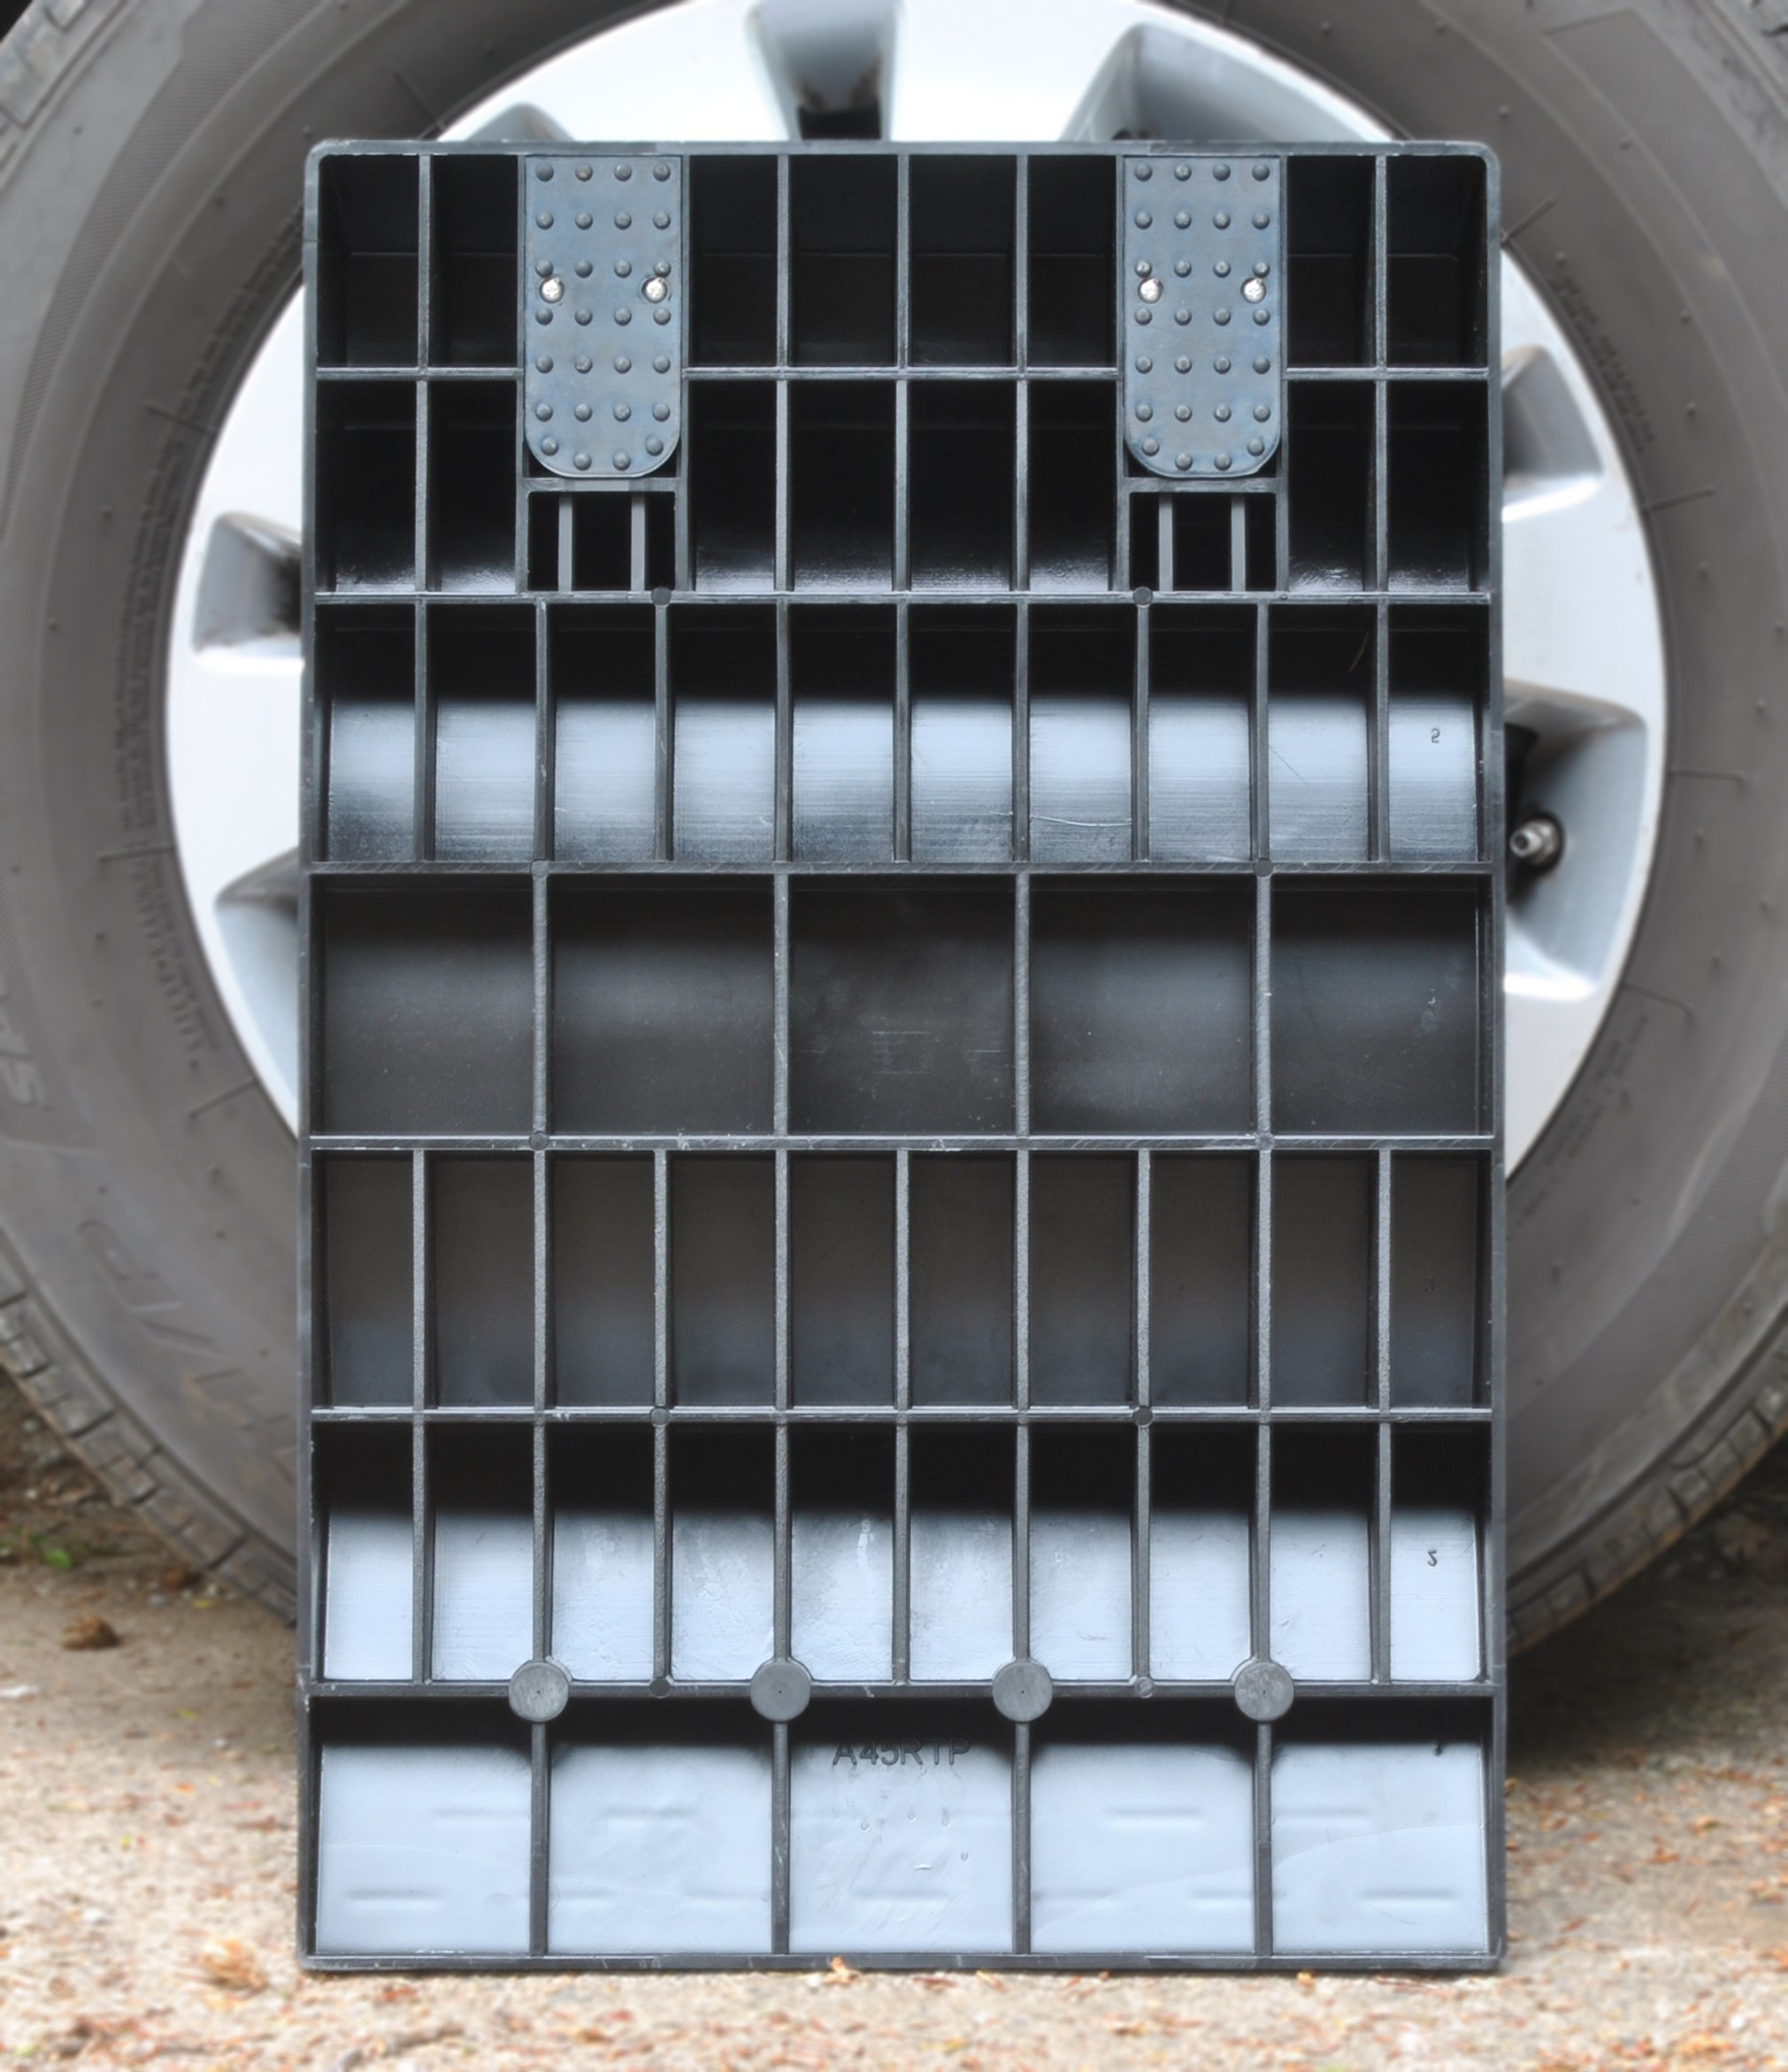 MAXSA 37353 Park Right Tire Saver Ramps for Flat Spot Prevention and Vehicle Storage (Set of 4), Black by Maxsa Innovations (Image #3)